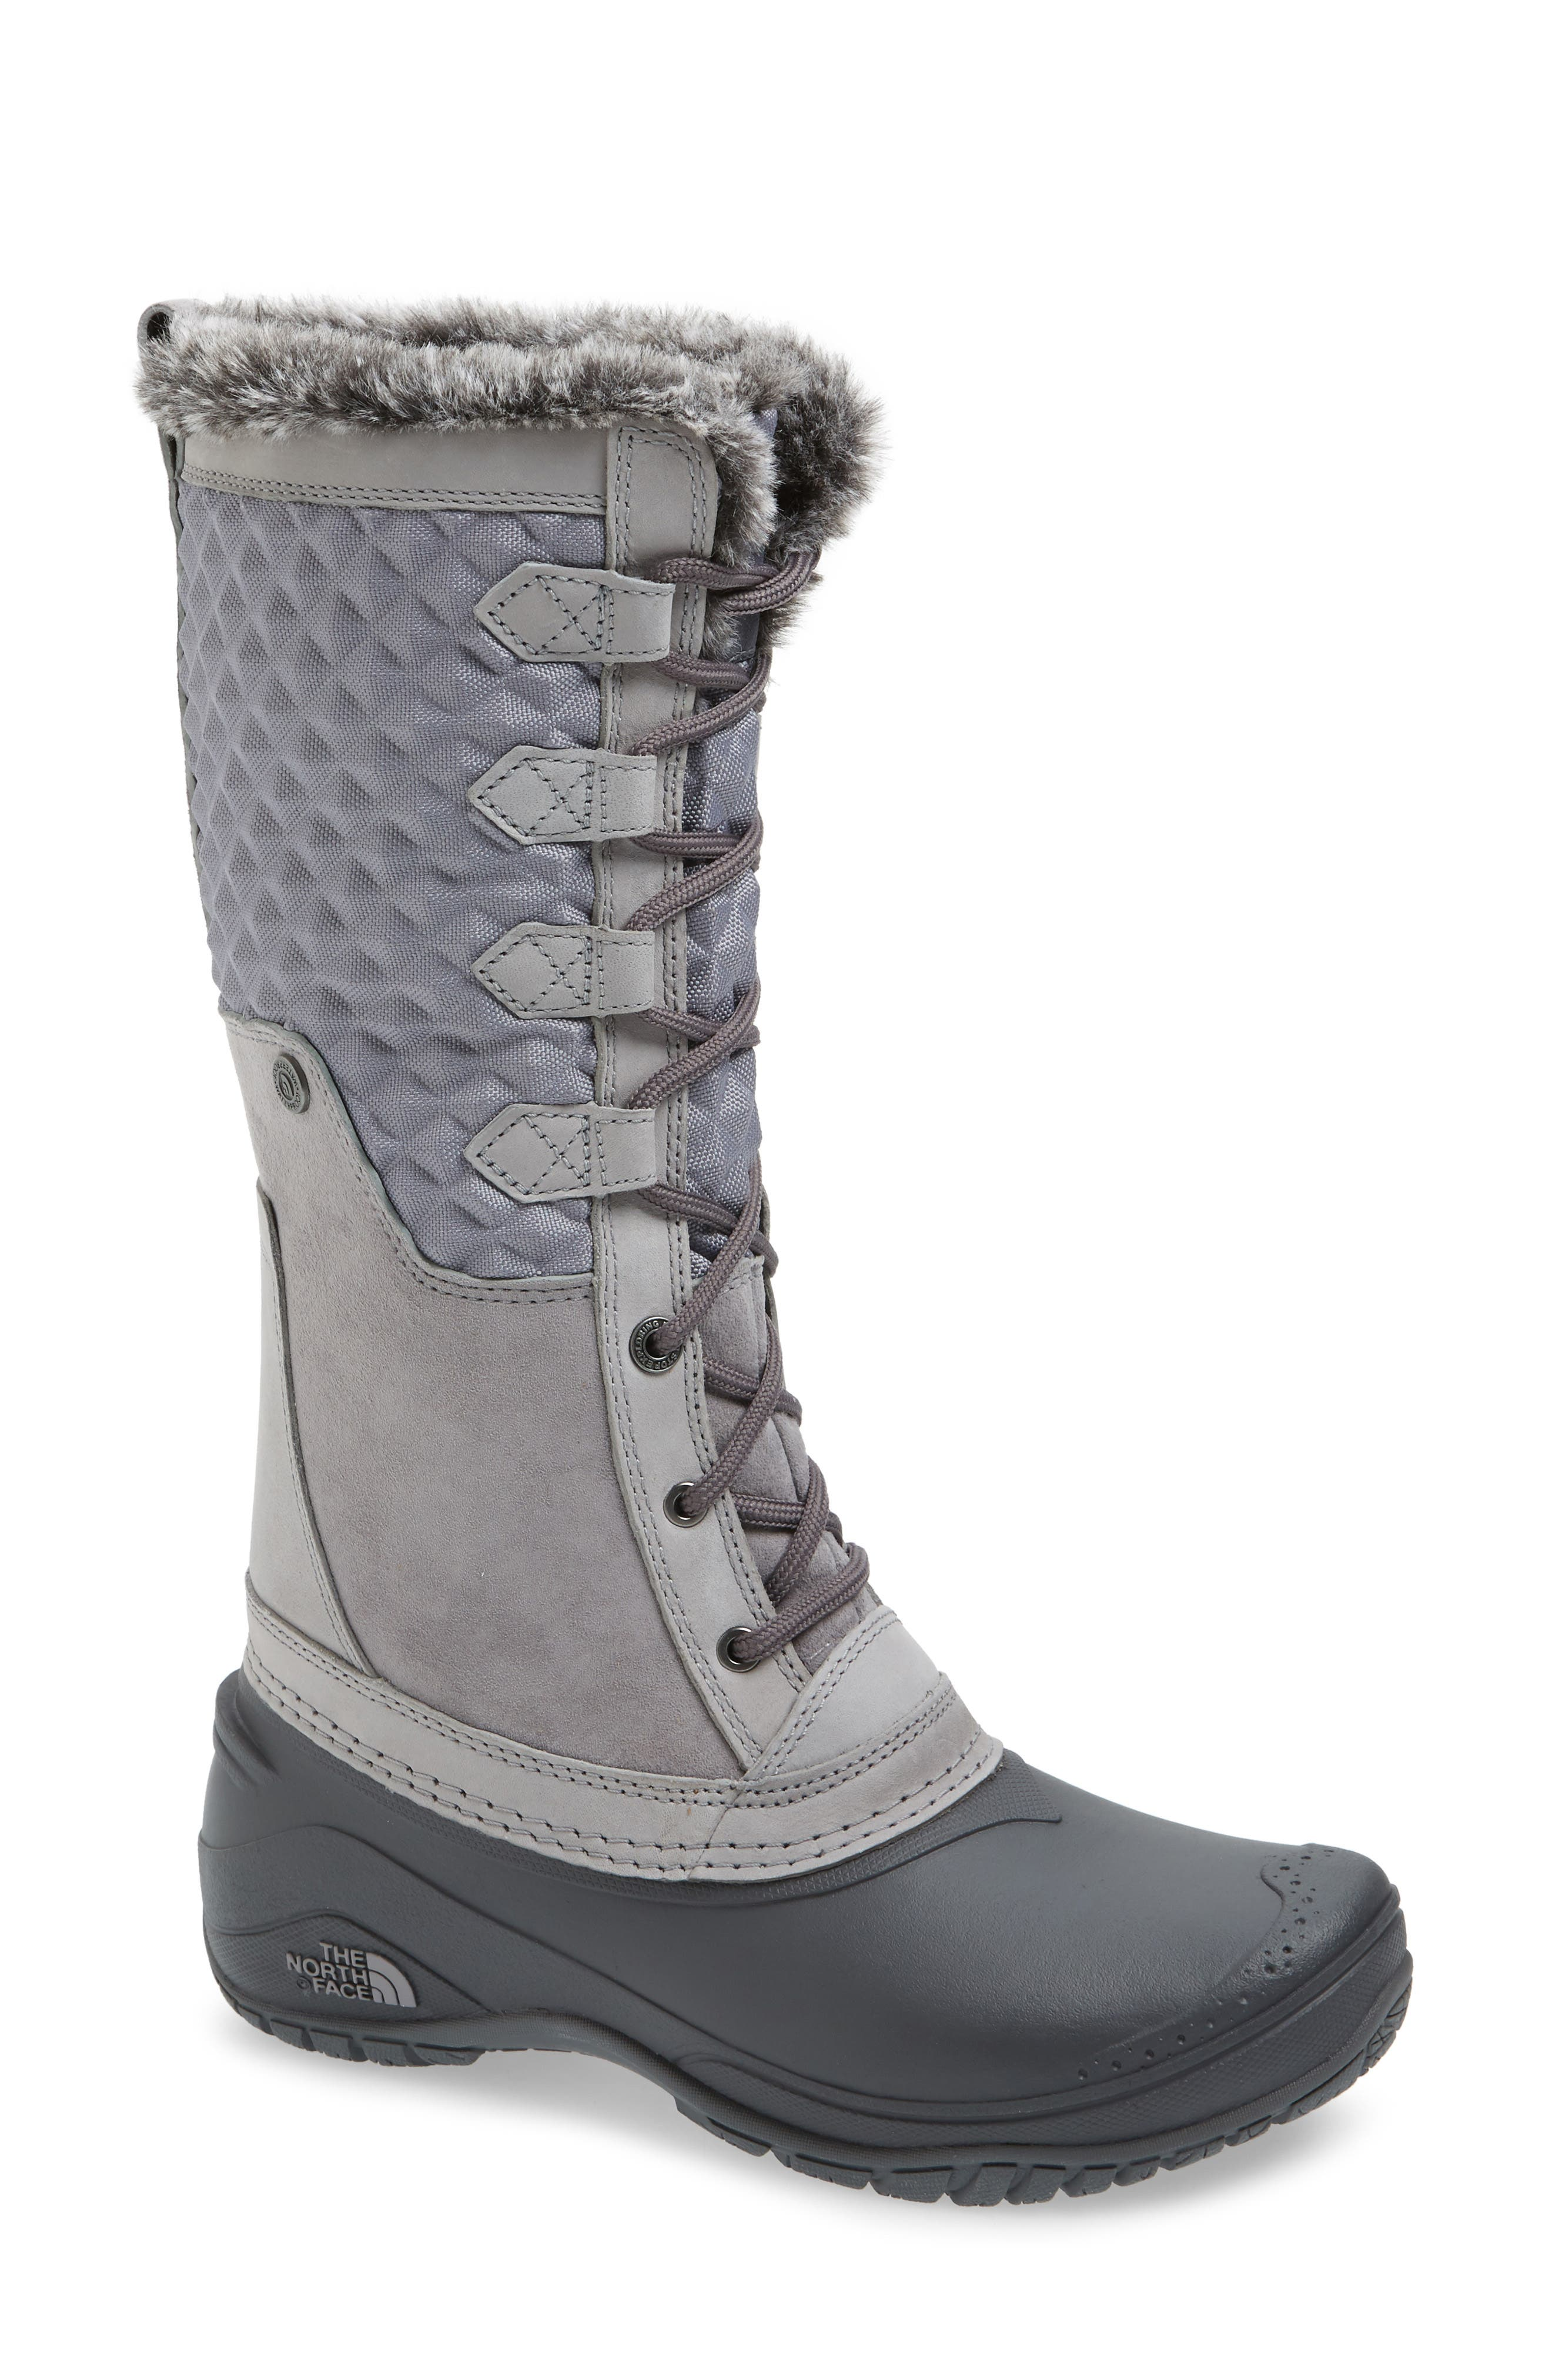 Alternate Image 1 Selected - The North Face Shellista III Tall Waterproof Insulated Winter Boot (Women)